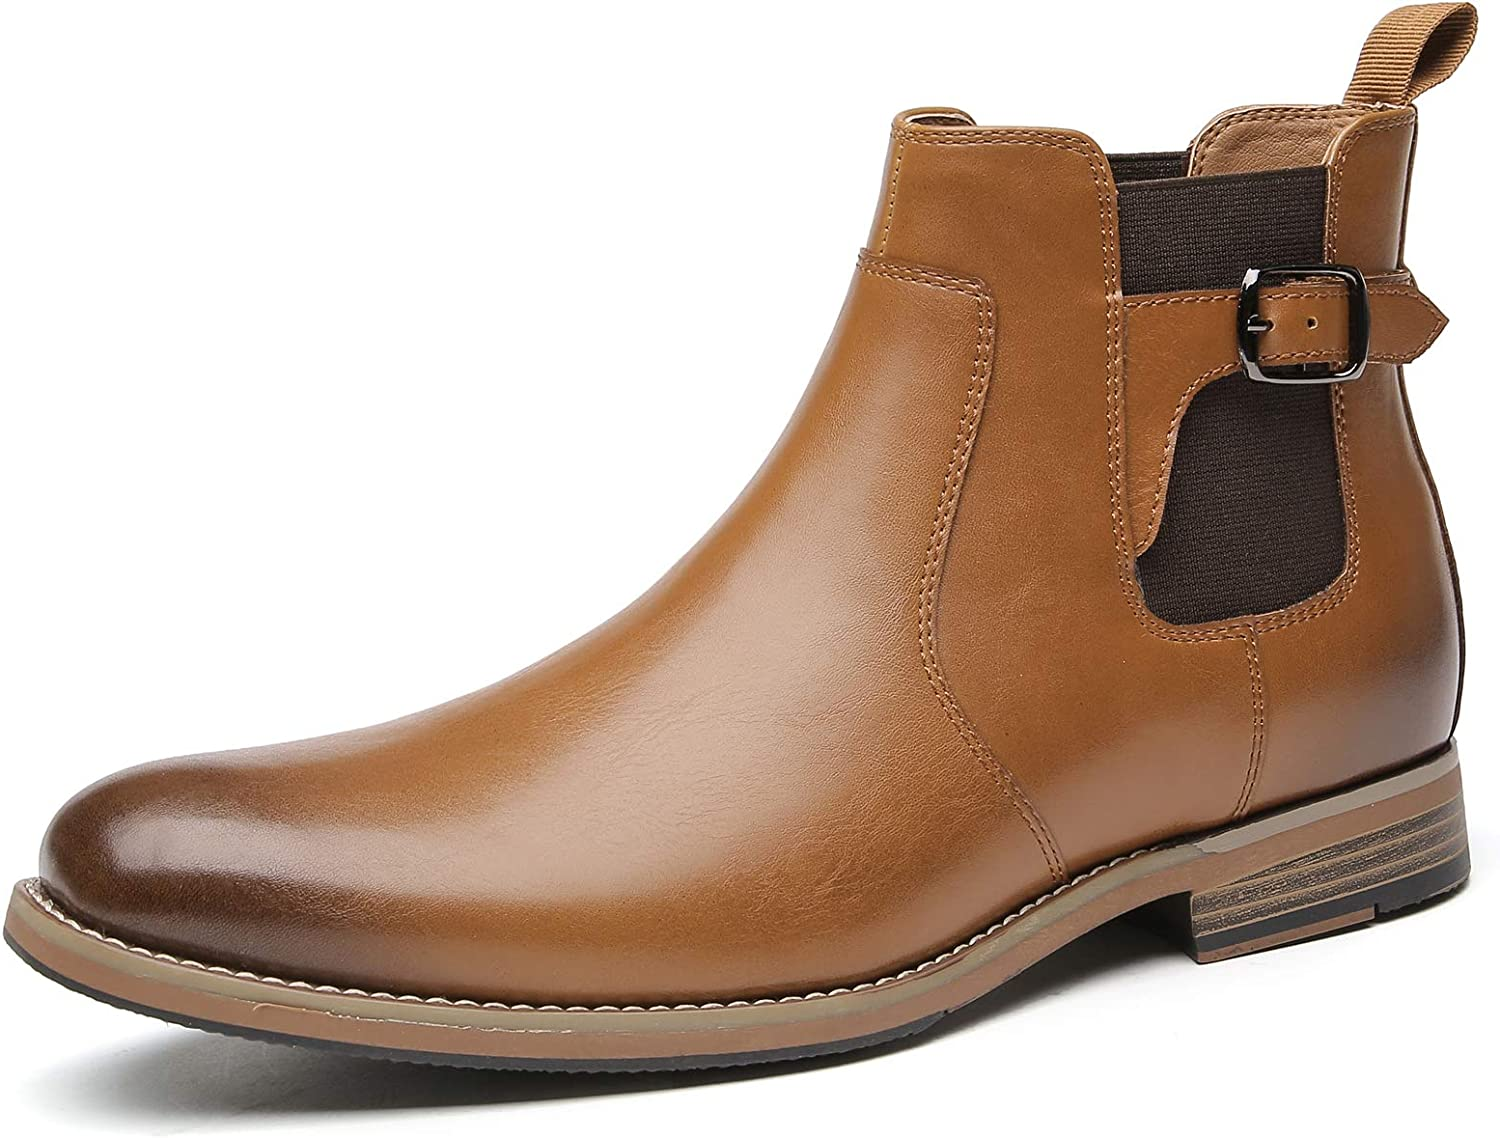 Popular overseas Slip On Clearance SALE! Limited time! Chelsea Boots For Men Formal - And Brow Mens Dress